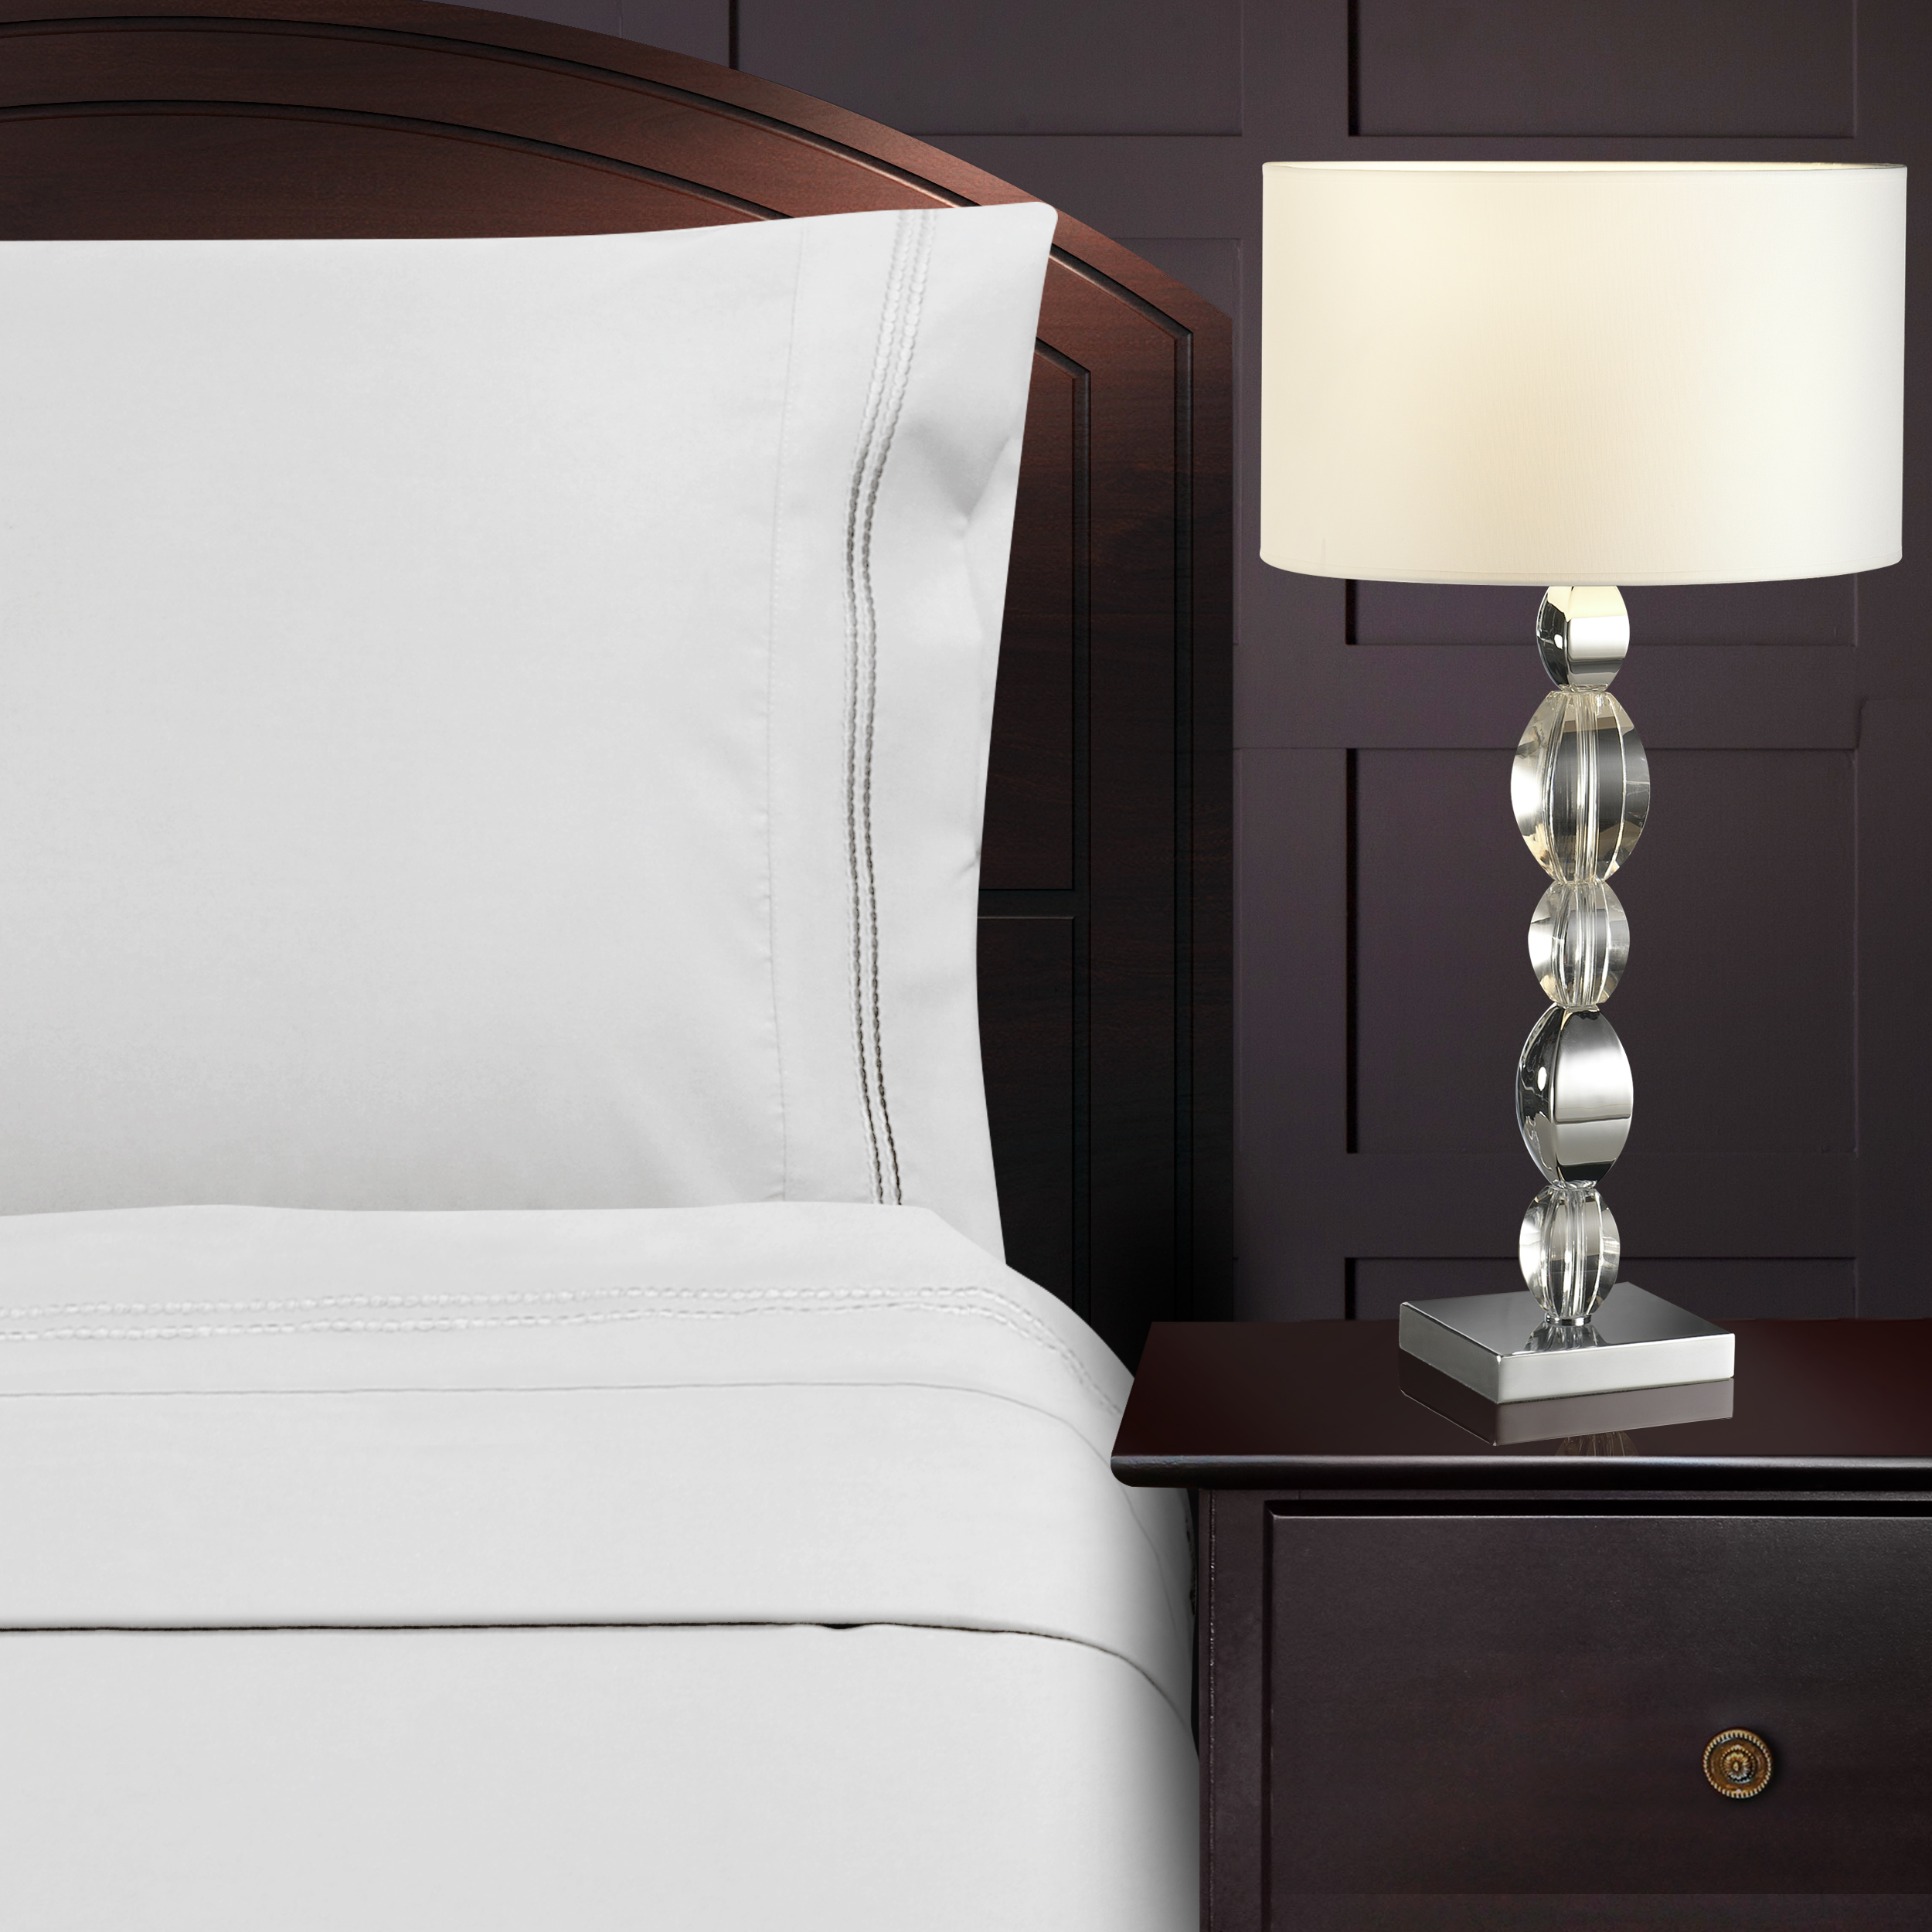 Superior Microfiber,Wrinkle Resistant Sheet Set with 2-Line Embroidery